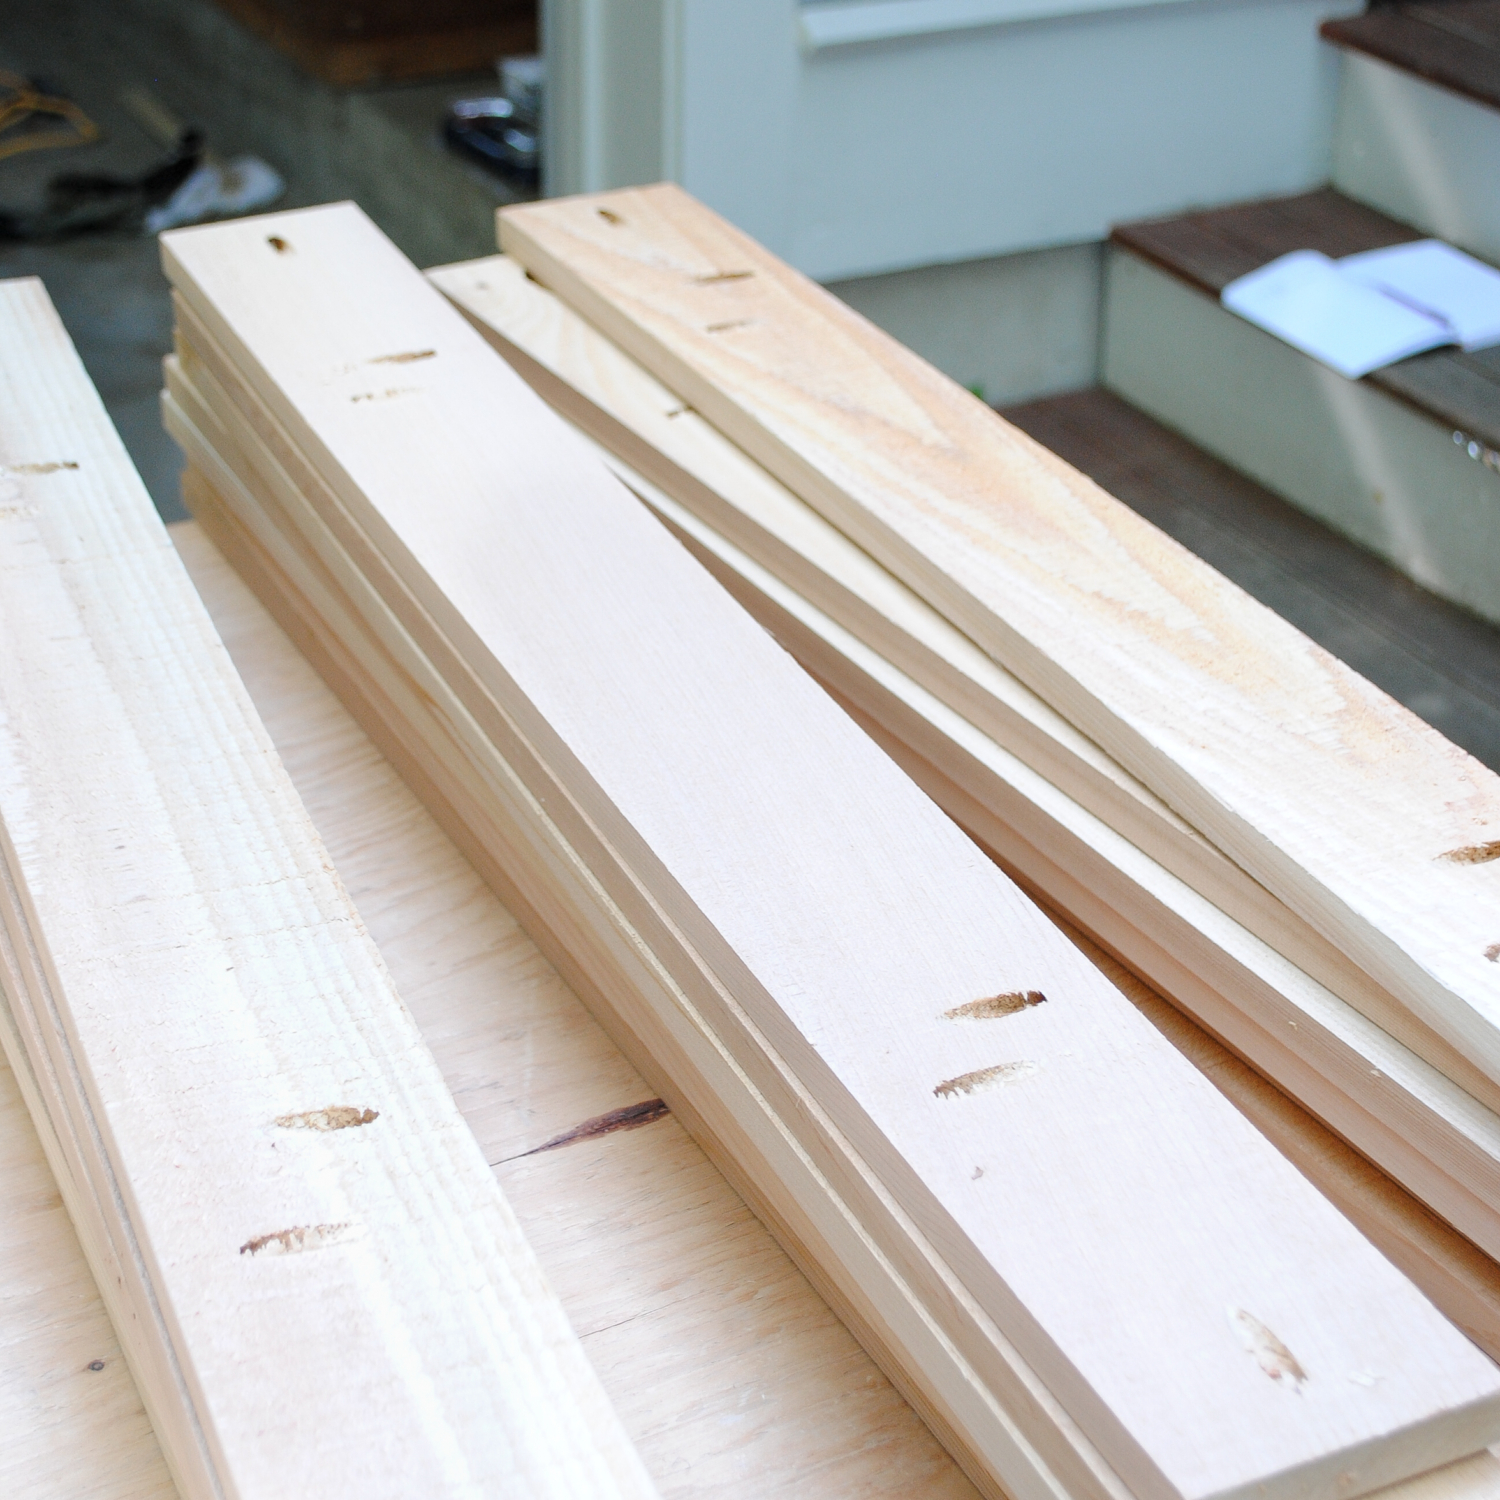 To Assemble The Table Top, Clamp The Boards Together One At A Time And  Attach Using 1u2033 Pocket Hole Screws In The Holes Along The Sides Of The  Boards.